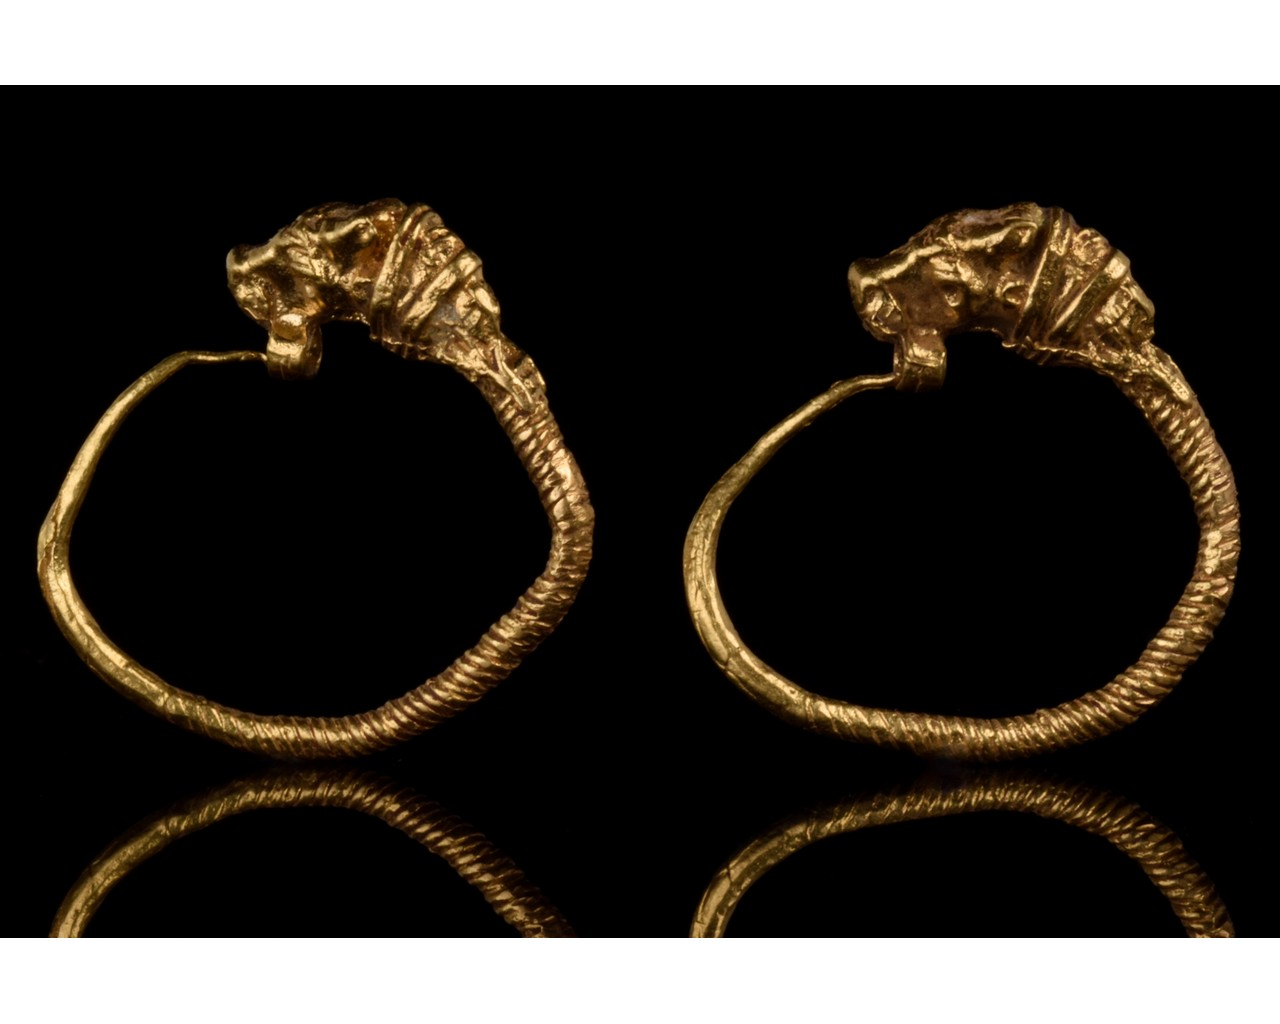 GREEK HELLENISTIC GOLD EARRINGS WITH LIONS - FULL ANALYSIS - Image 2 of 8